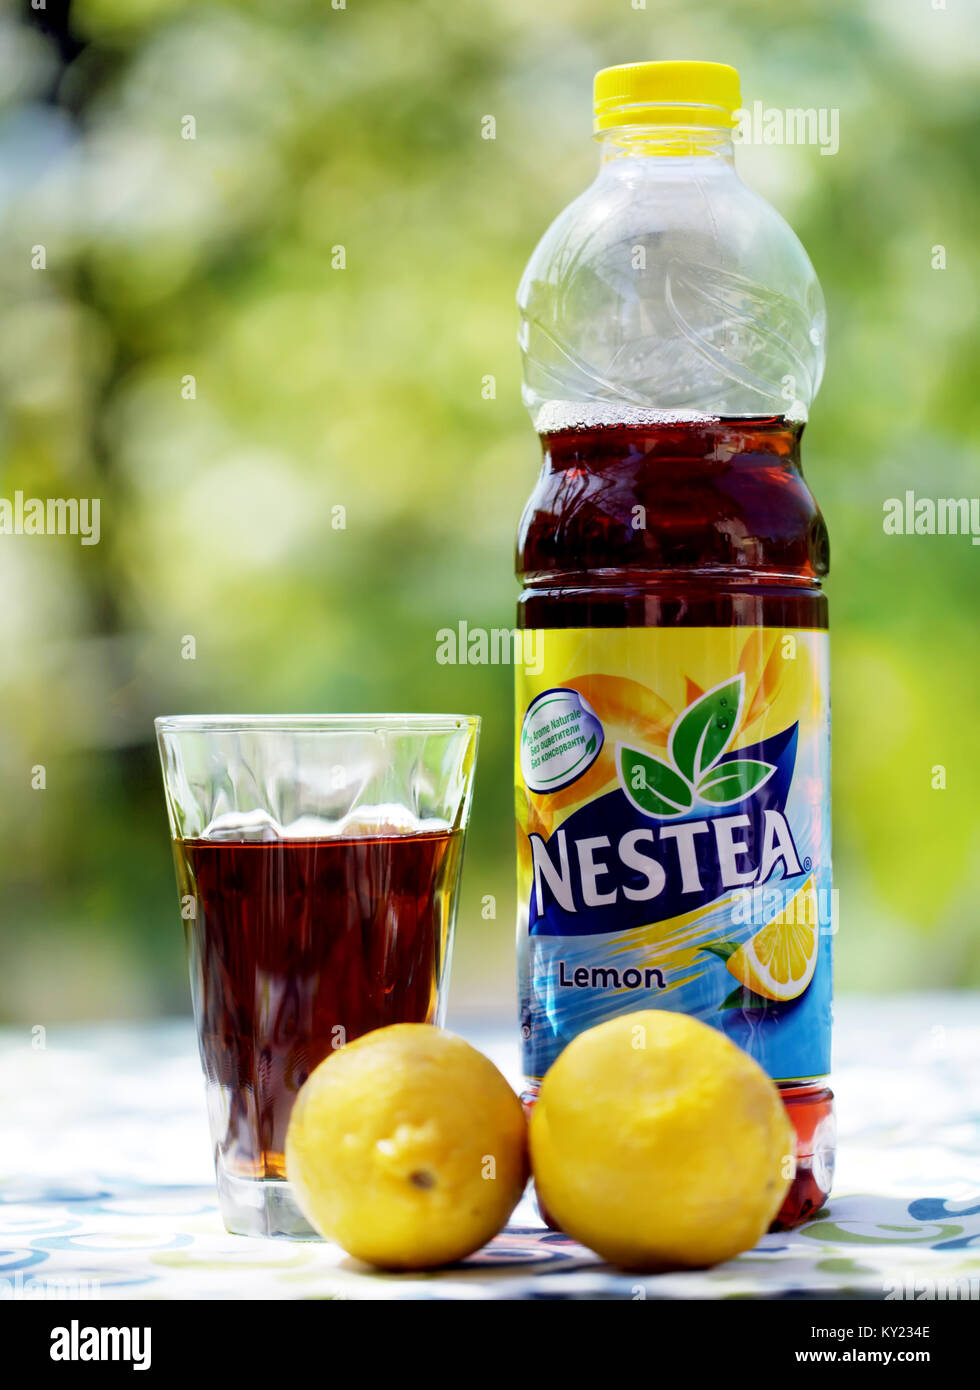 Sofia Bulgaria November 16 2017 Nestea A Refreshing Made With Lemon Tea Real And Natural Flavor Is Brand Of Iced By Di